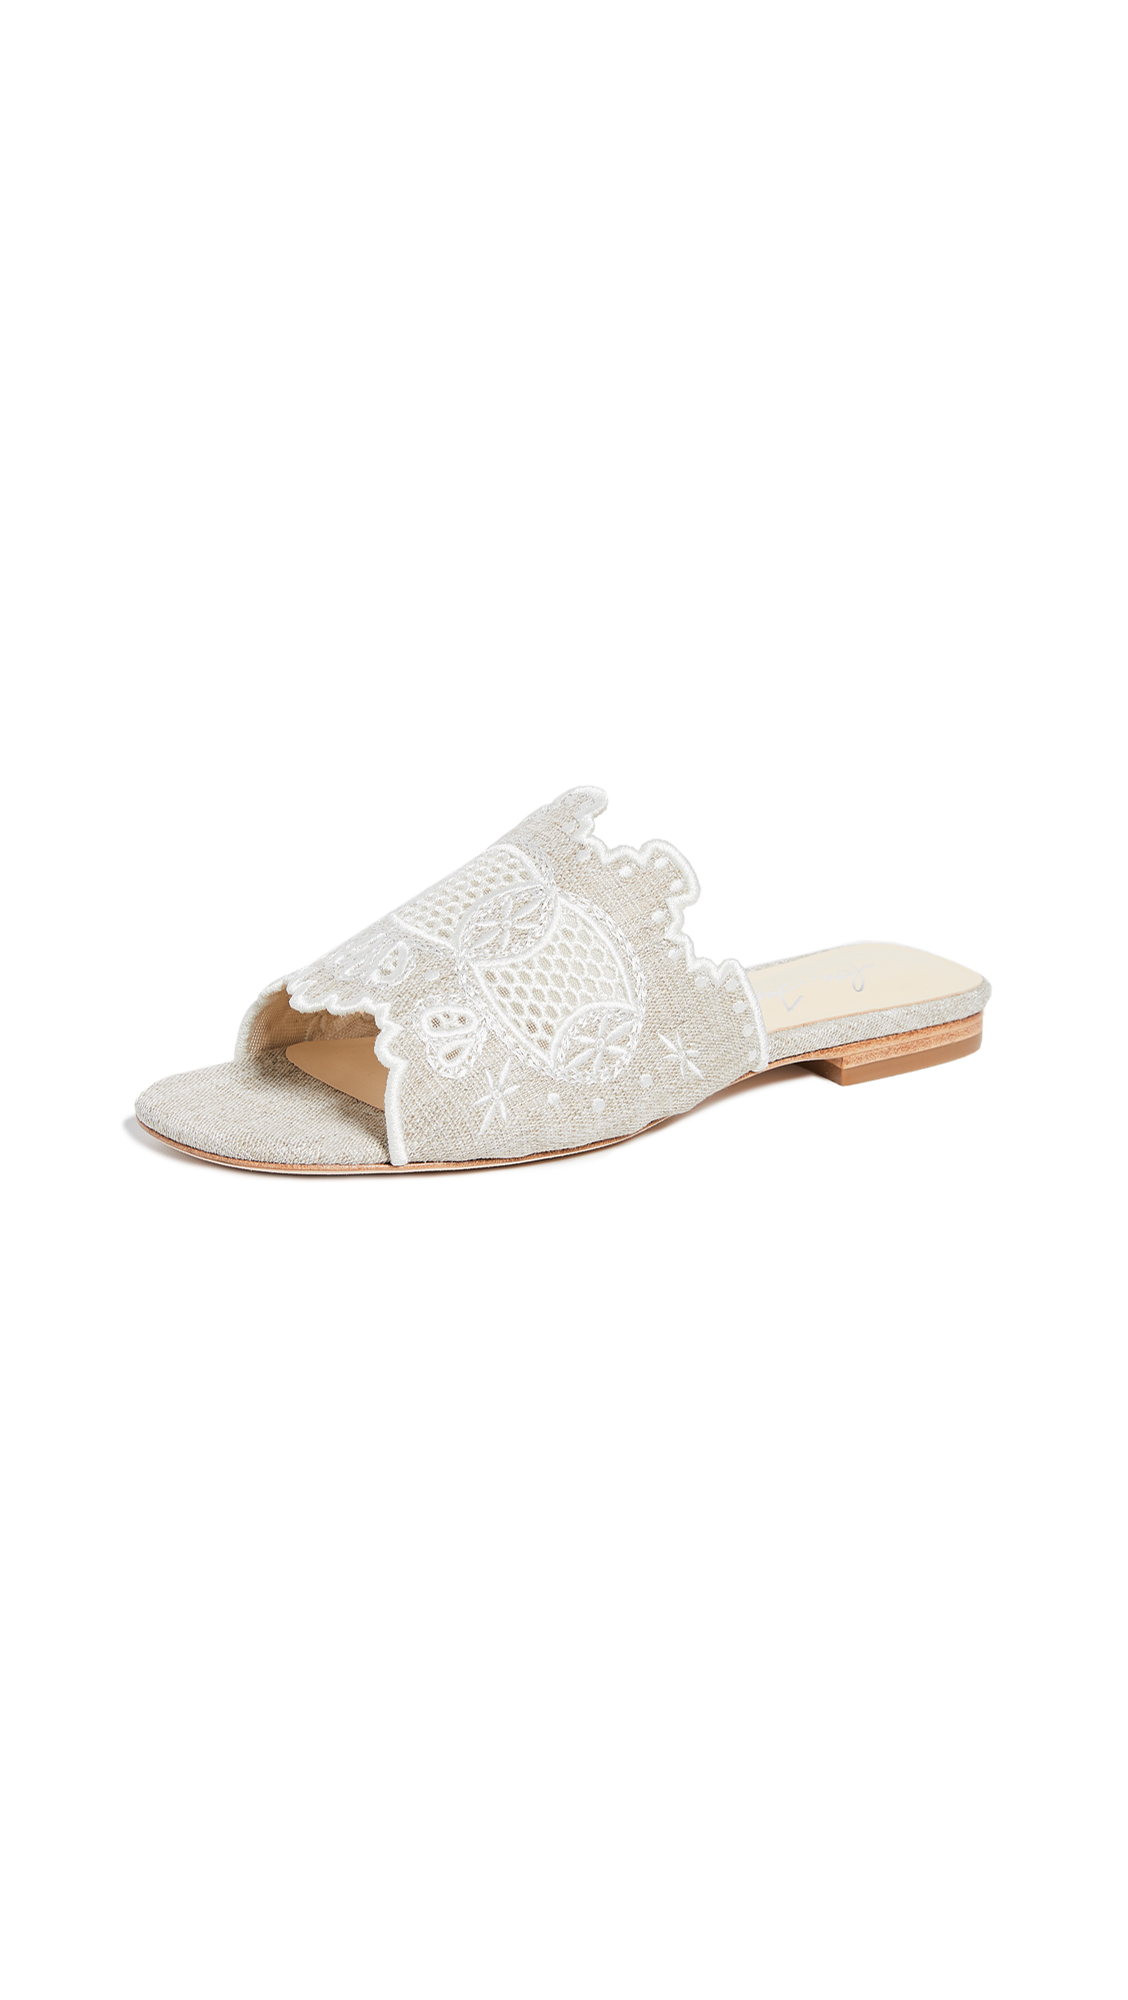 Isa Tapia Nile Flat Slides - Natural